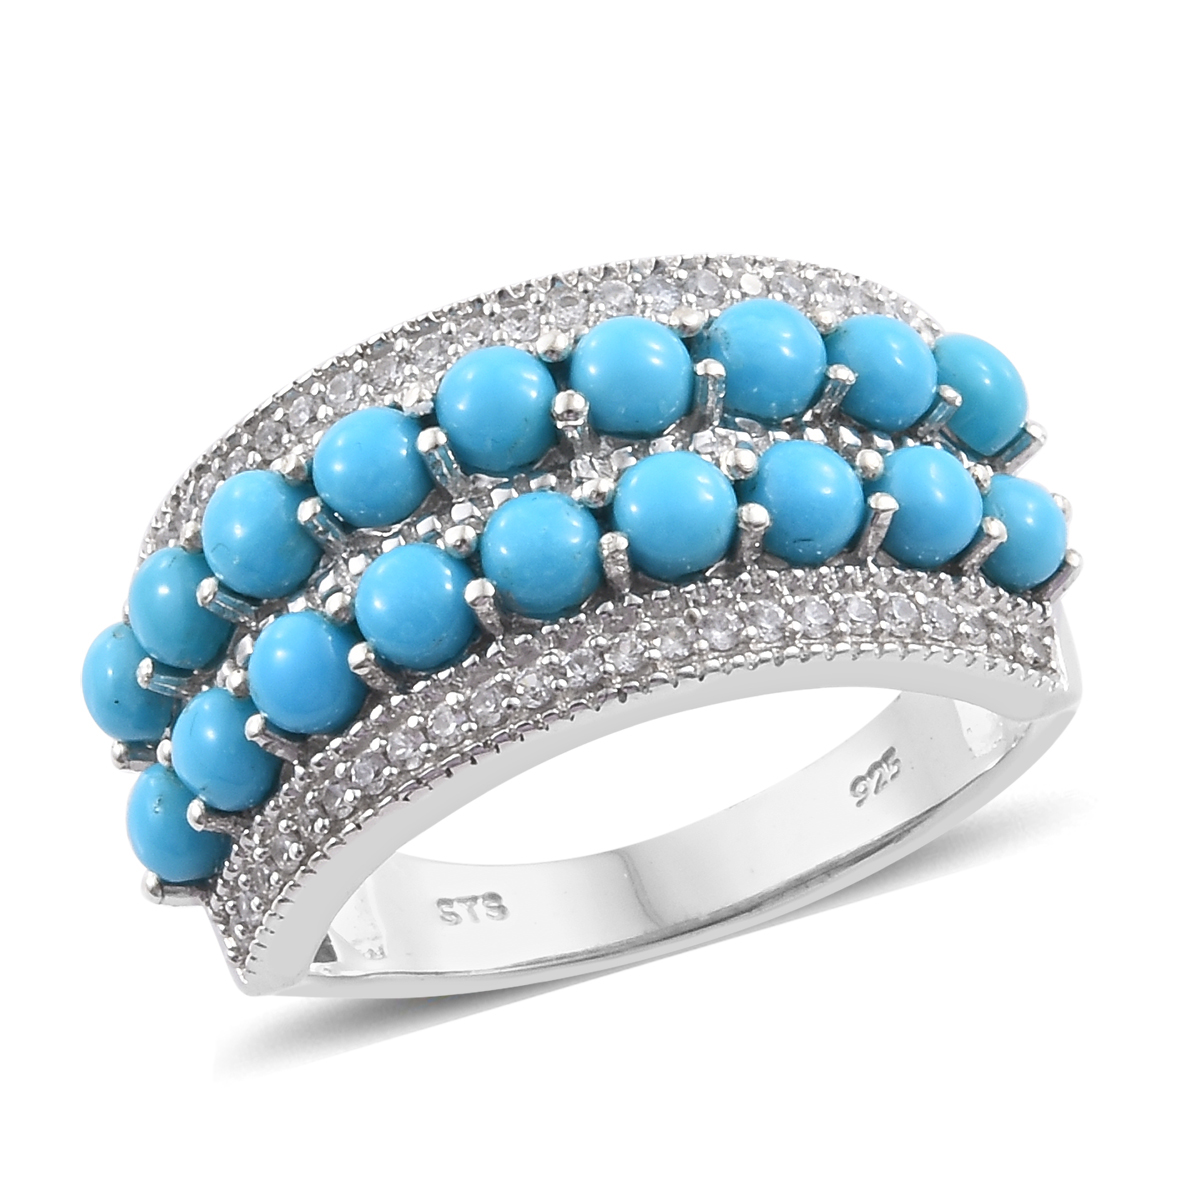 d42f752af6a9cb Arizona Sleeping Beauty Turquoise, Cambodian Zircon Platinum Over Sterling Silver  Band Ring (Size 8.0) 3.11 ctw | Cluster | Rings | Jewelry | online-store ...